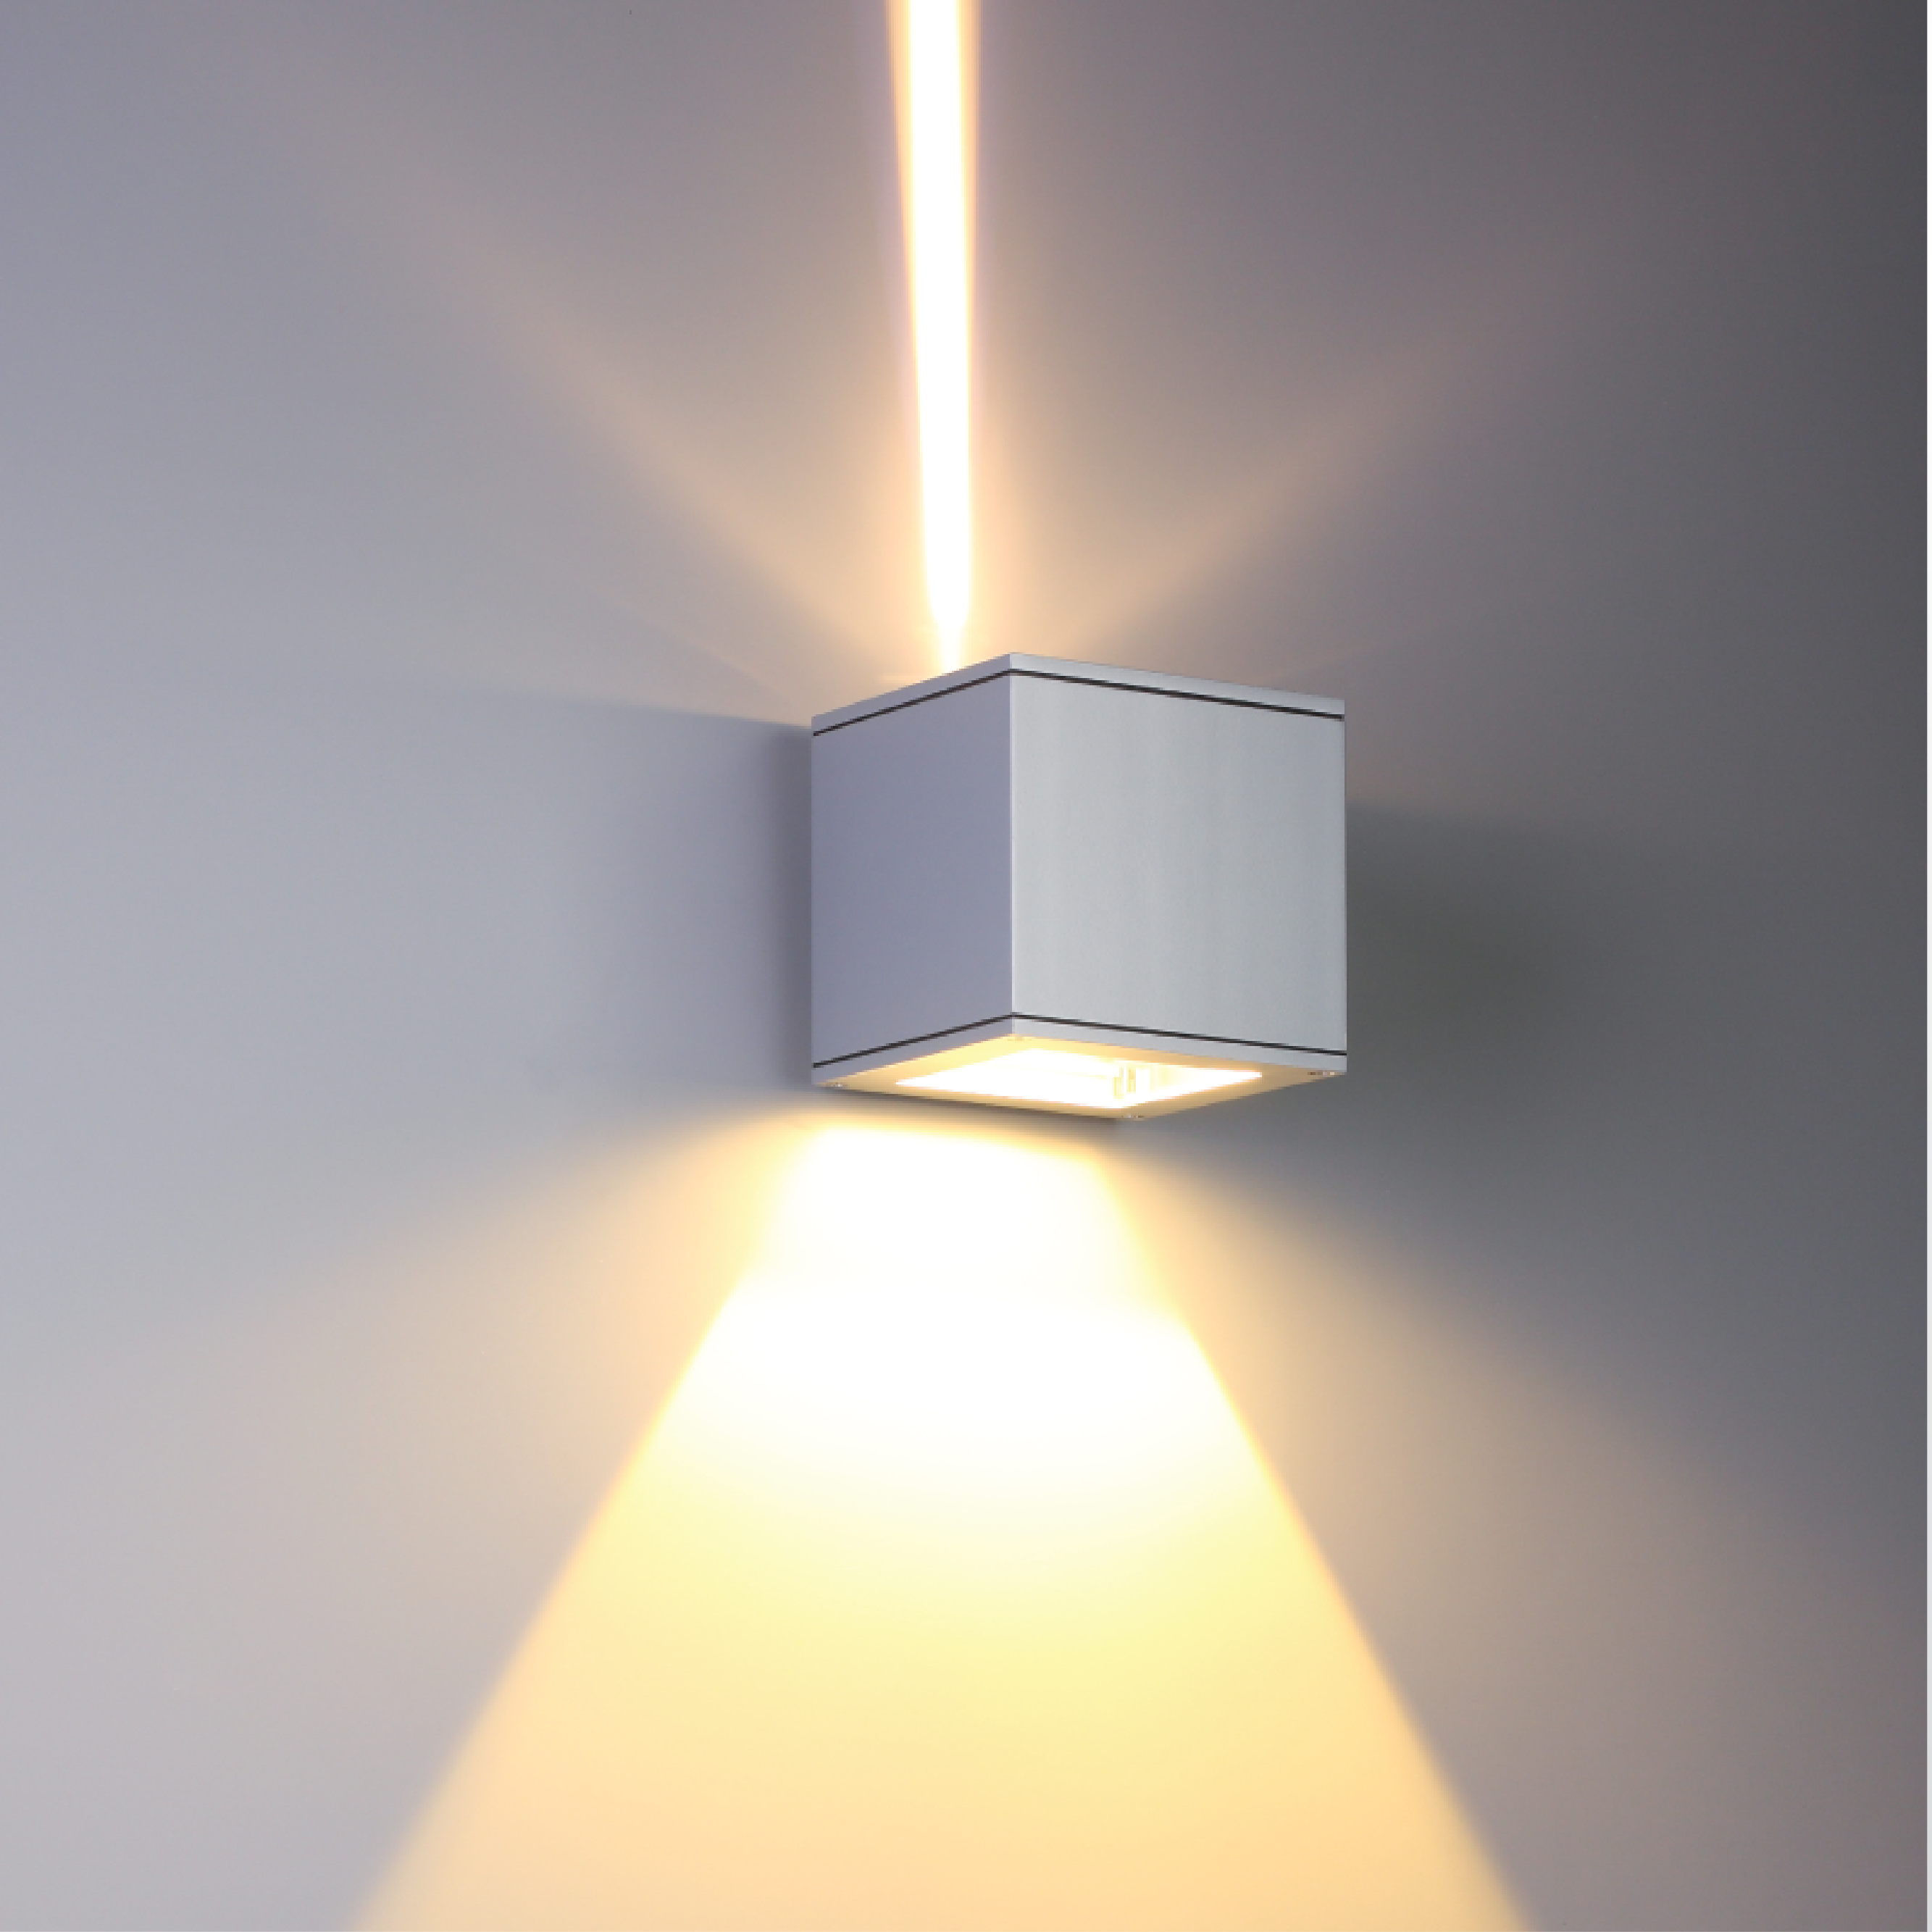 Surface luminaires matrix wall light www for Exterior up and down lights led